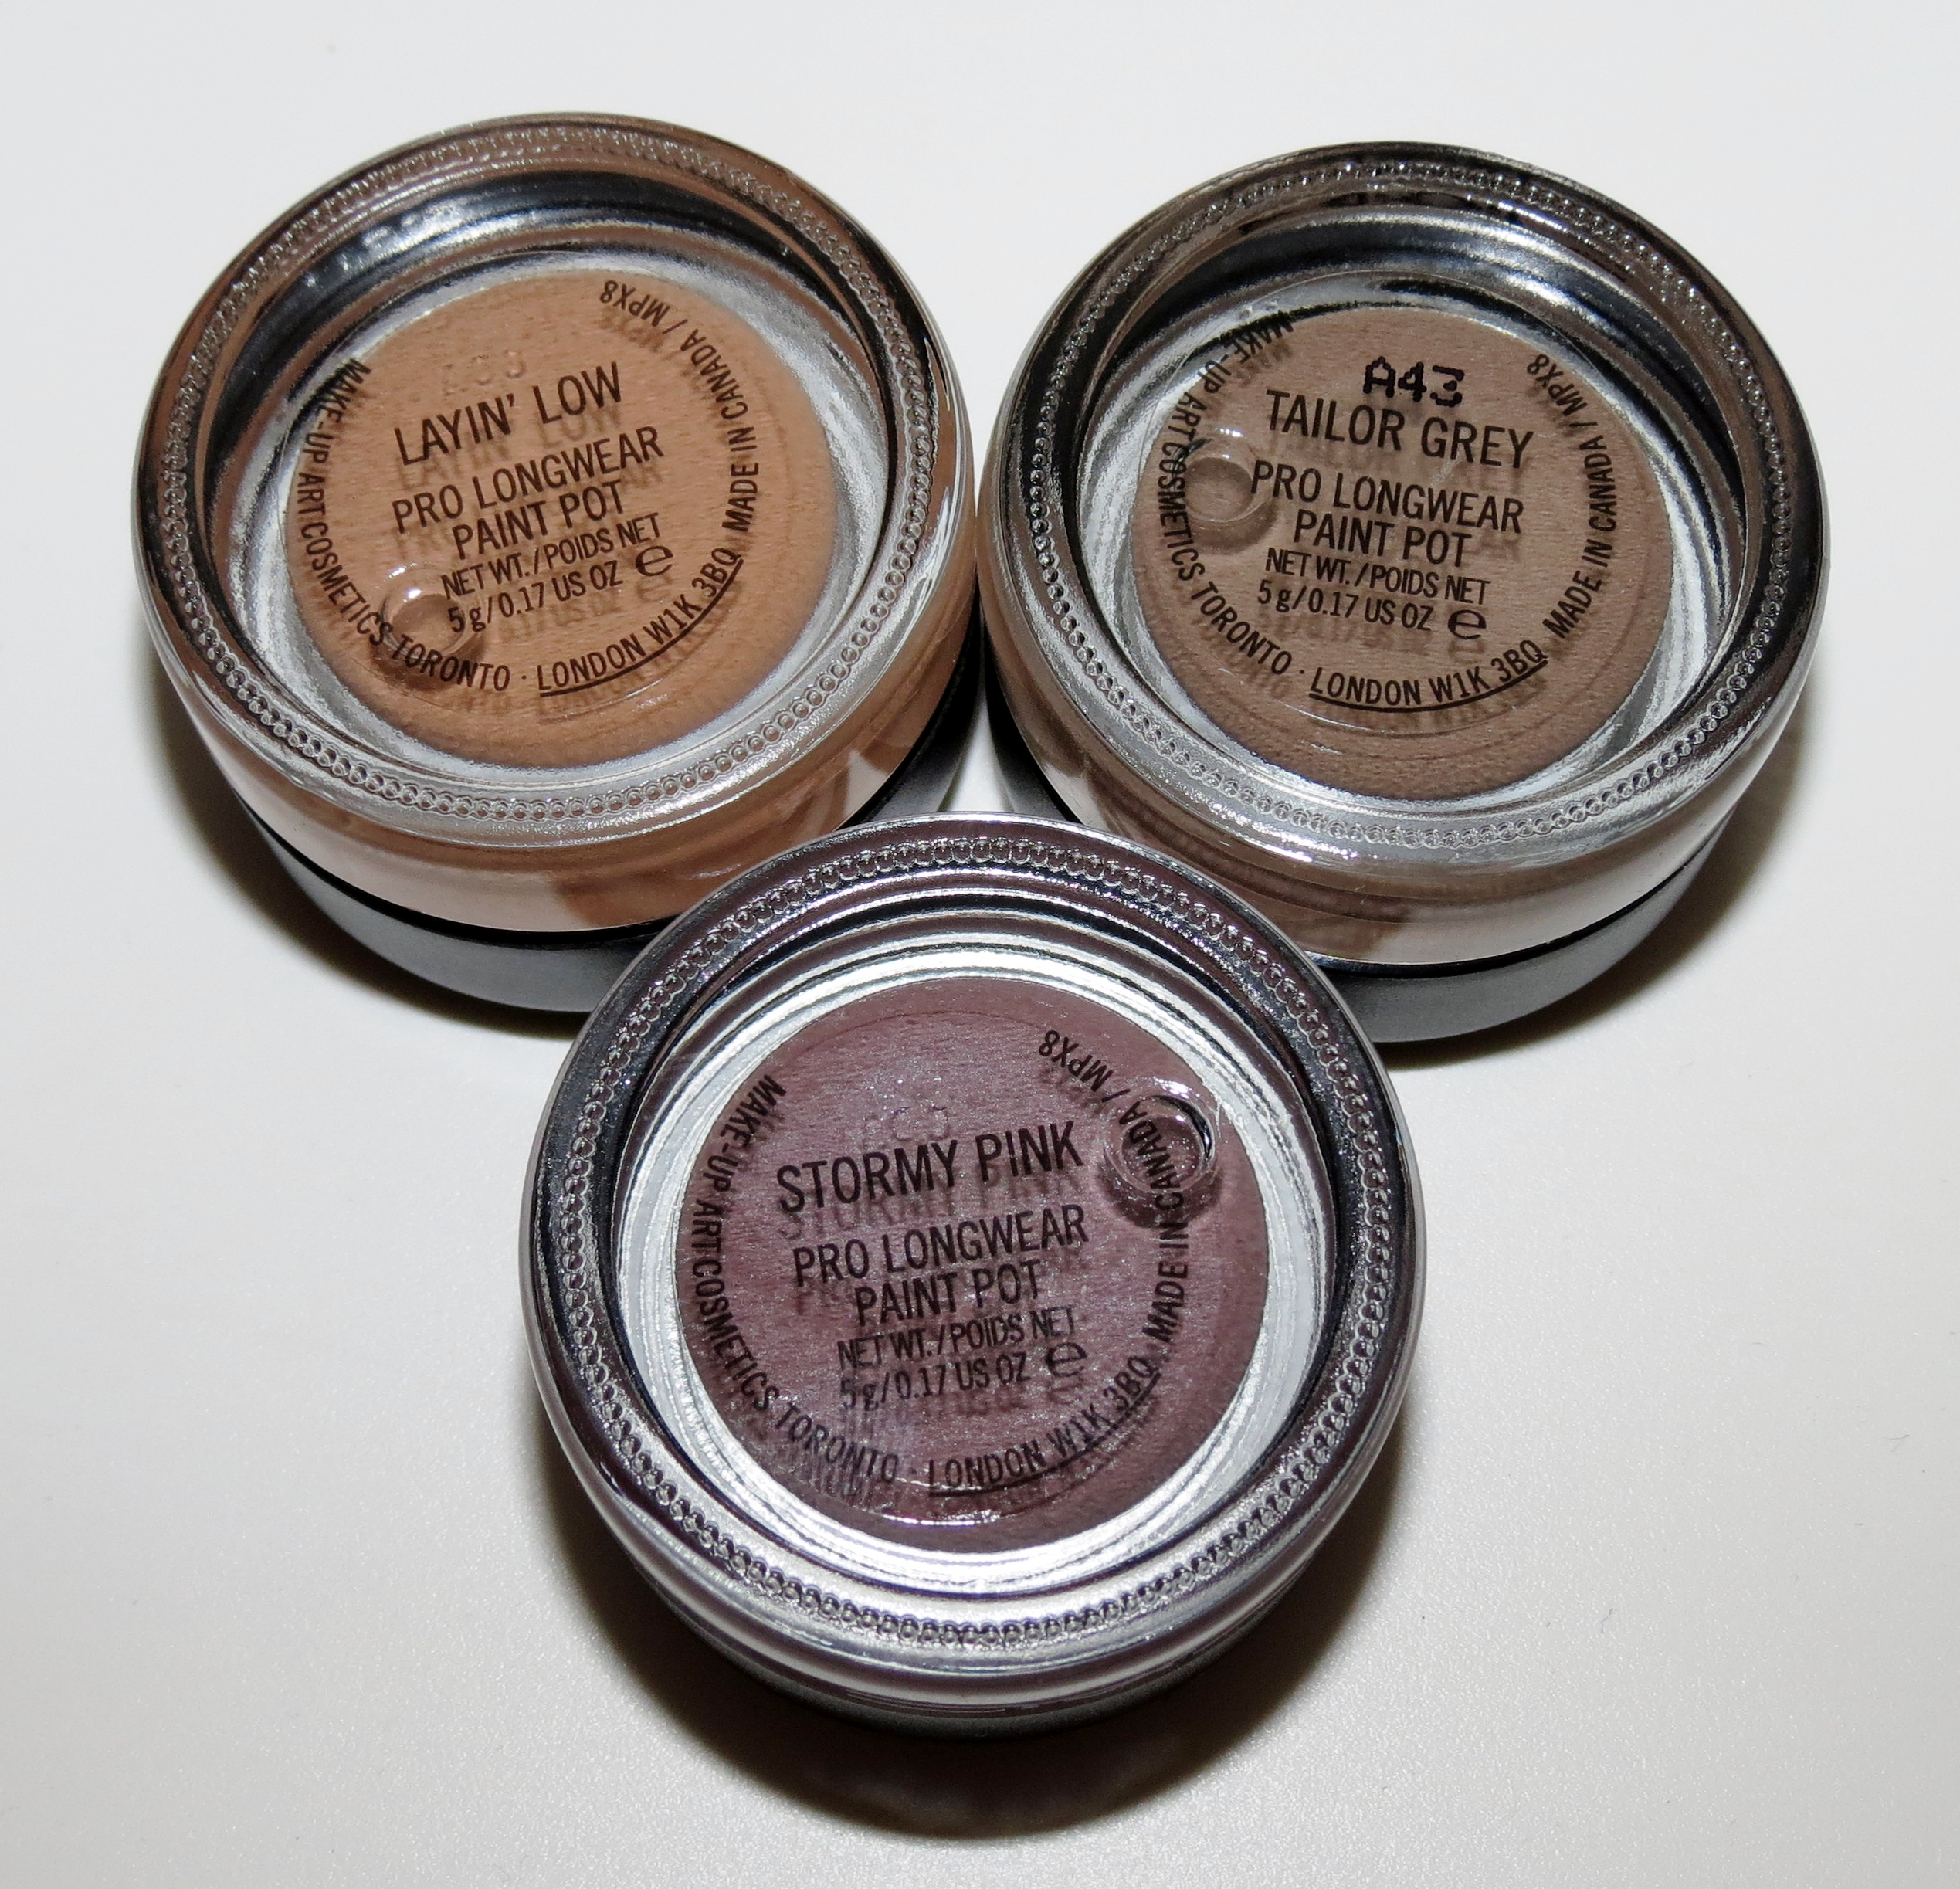 mac paint pot stormy pink review